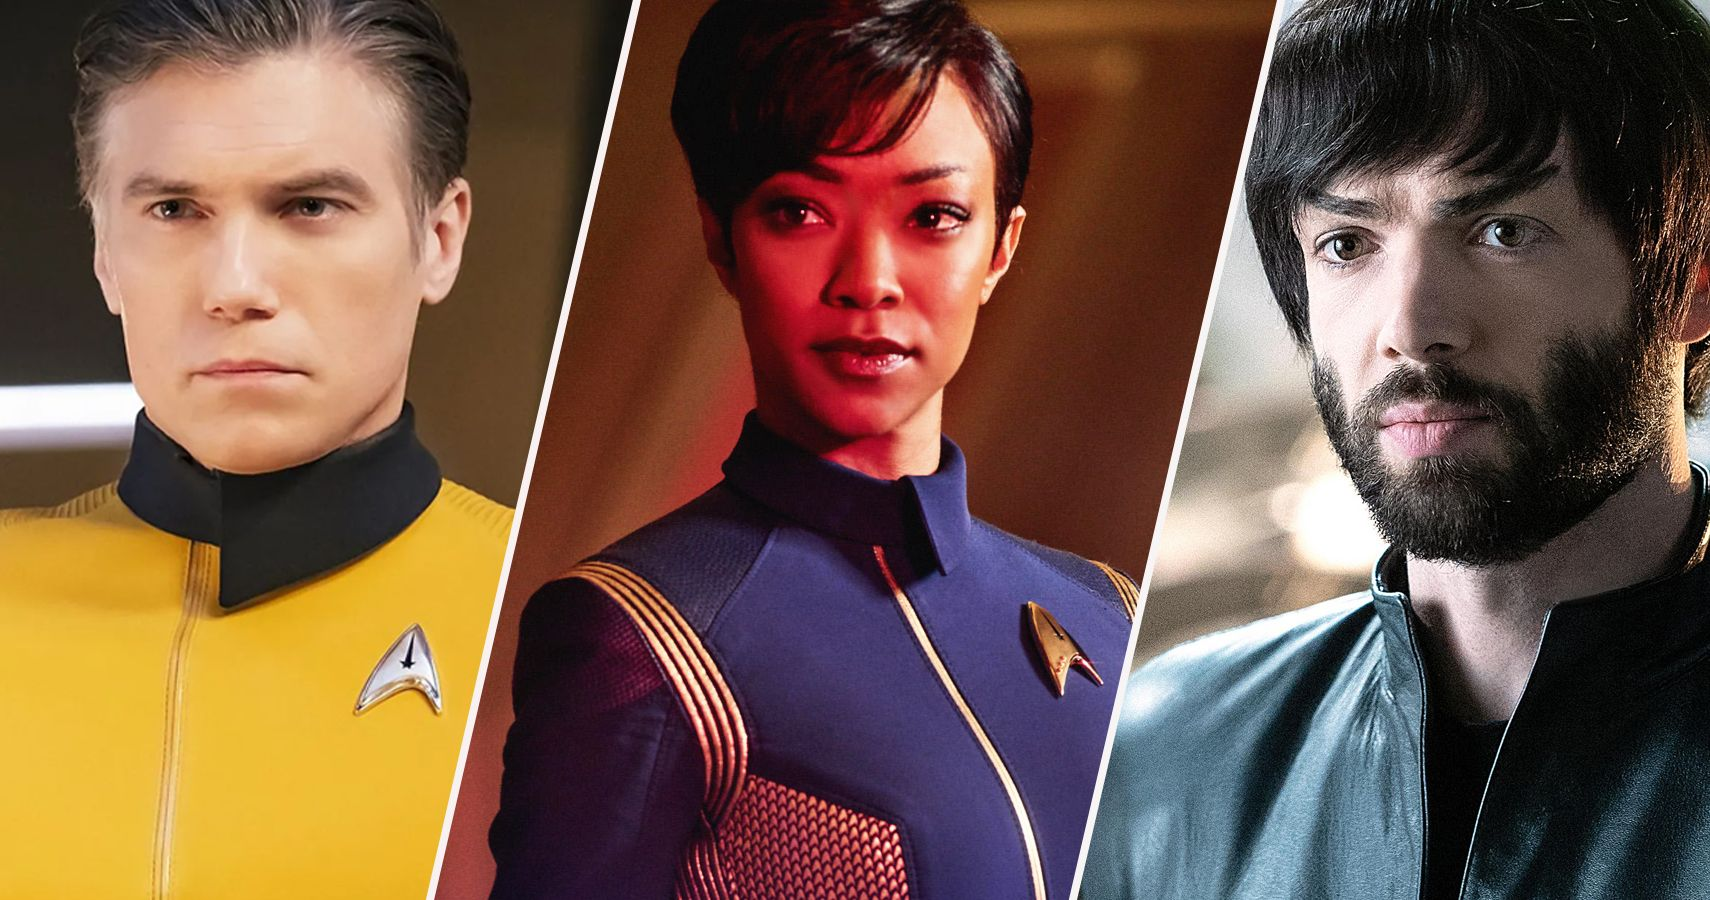 10 Things Confirmed For Season 2 Of Star Trek: Discovery